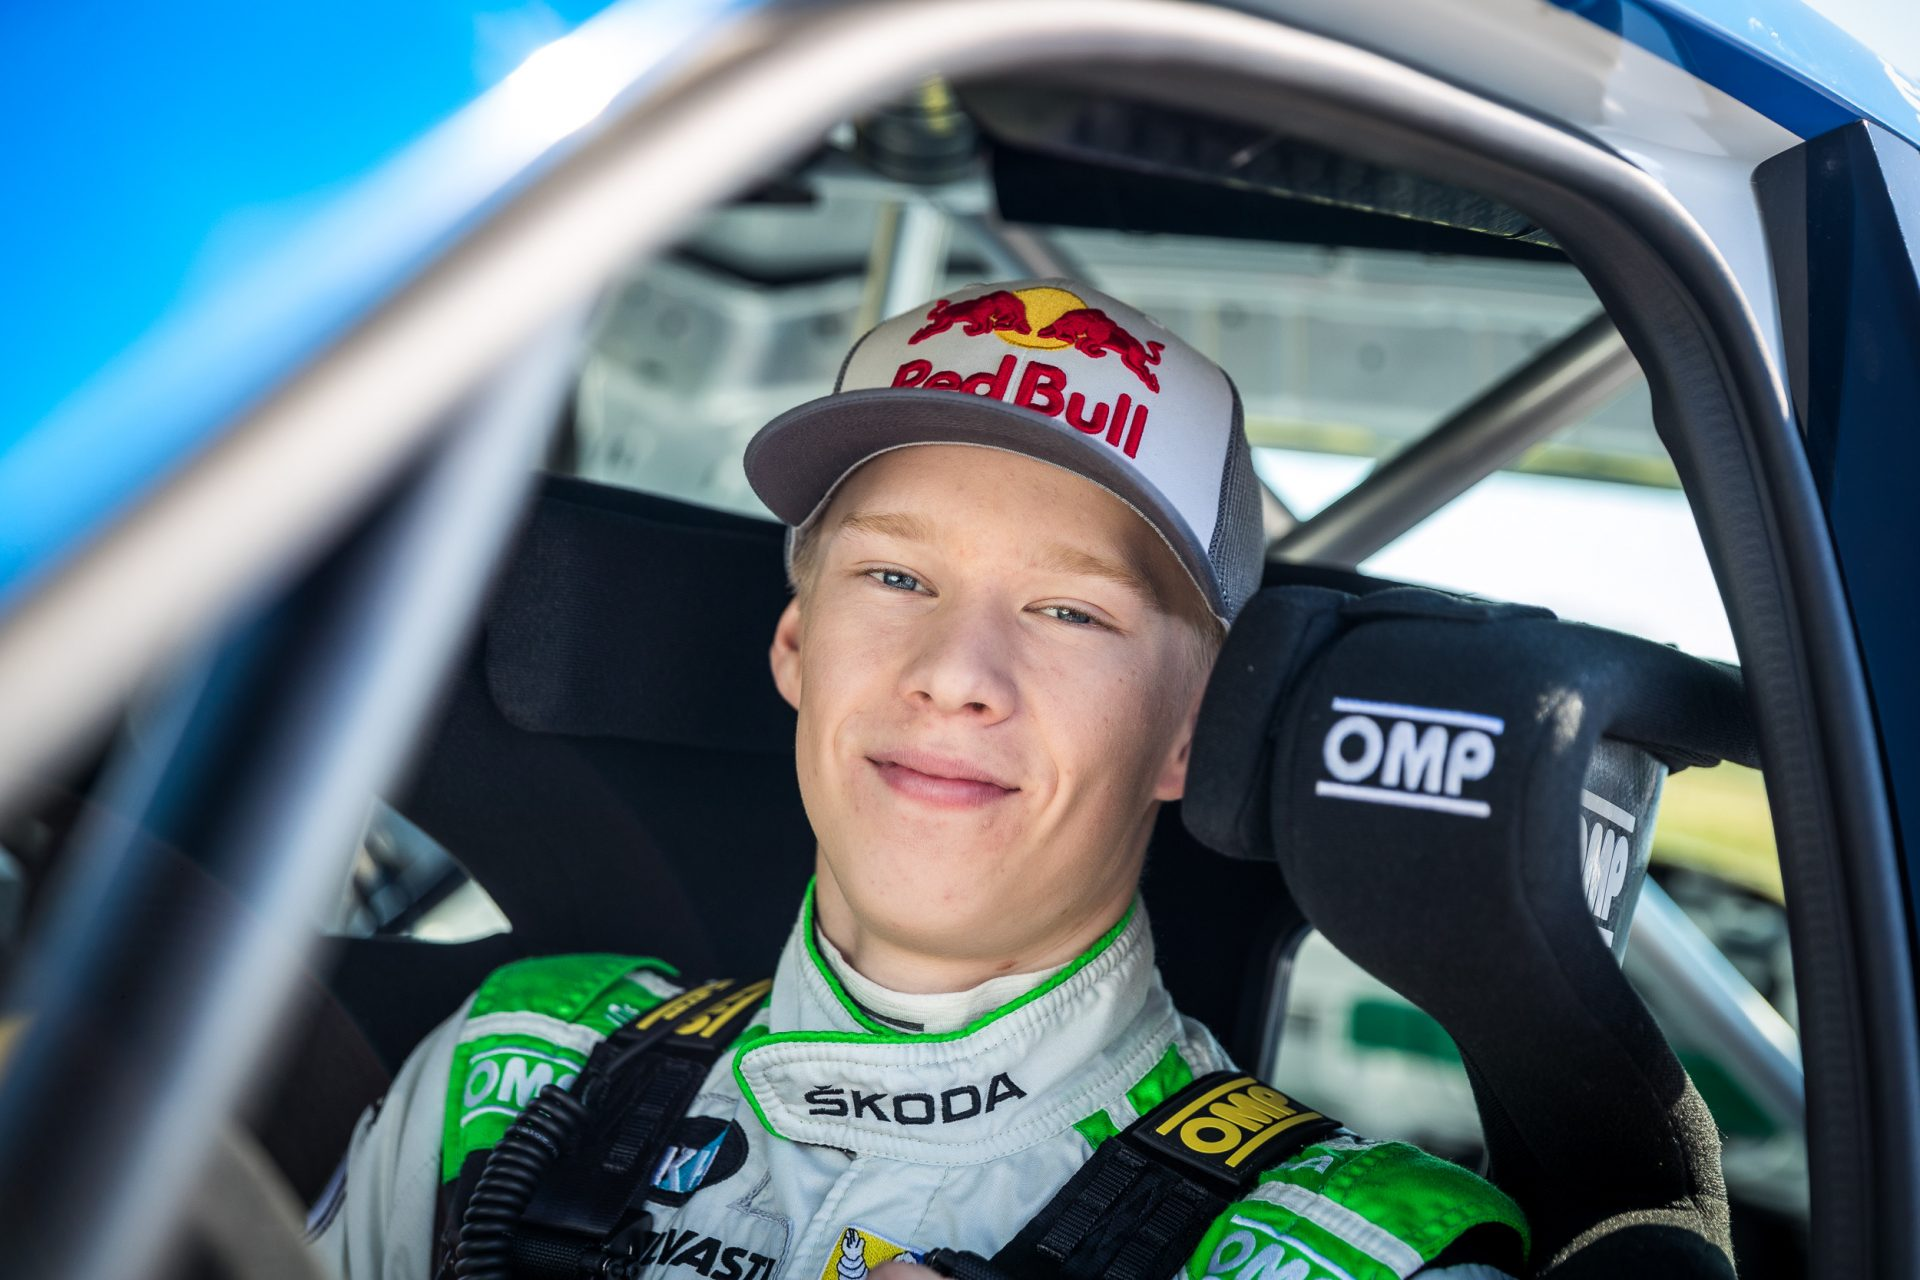 Kalle Rovanperä is 18: How Do You Become Successful in WRC 2 Before You're Adult?